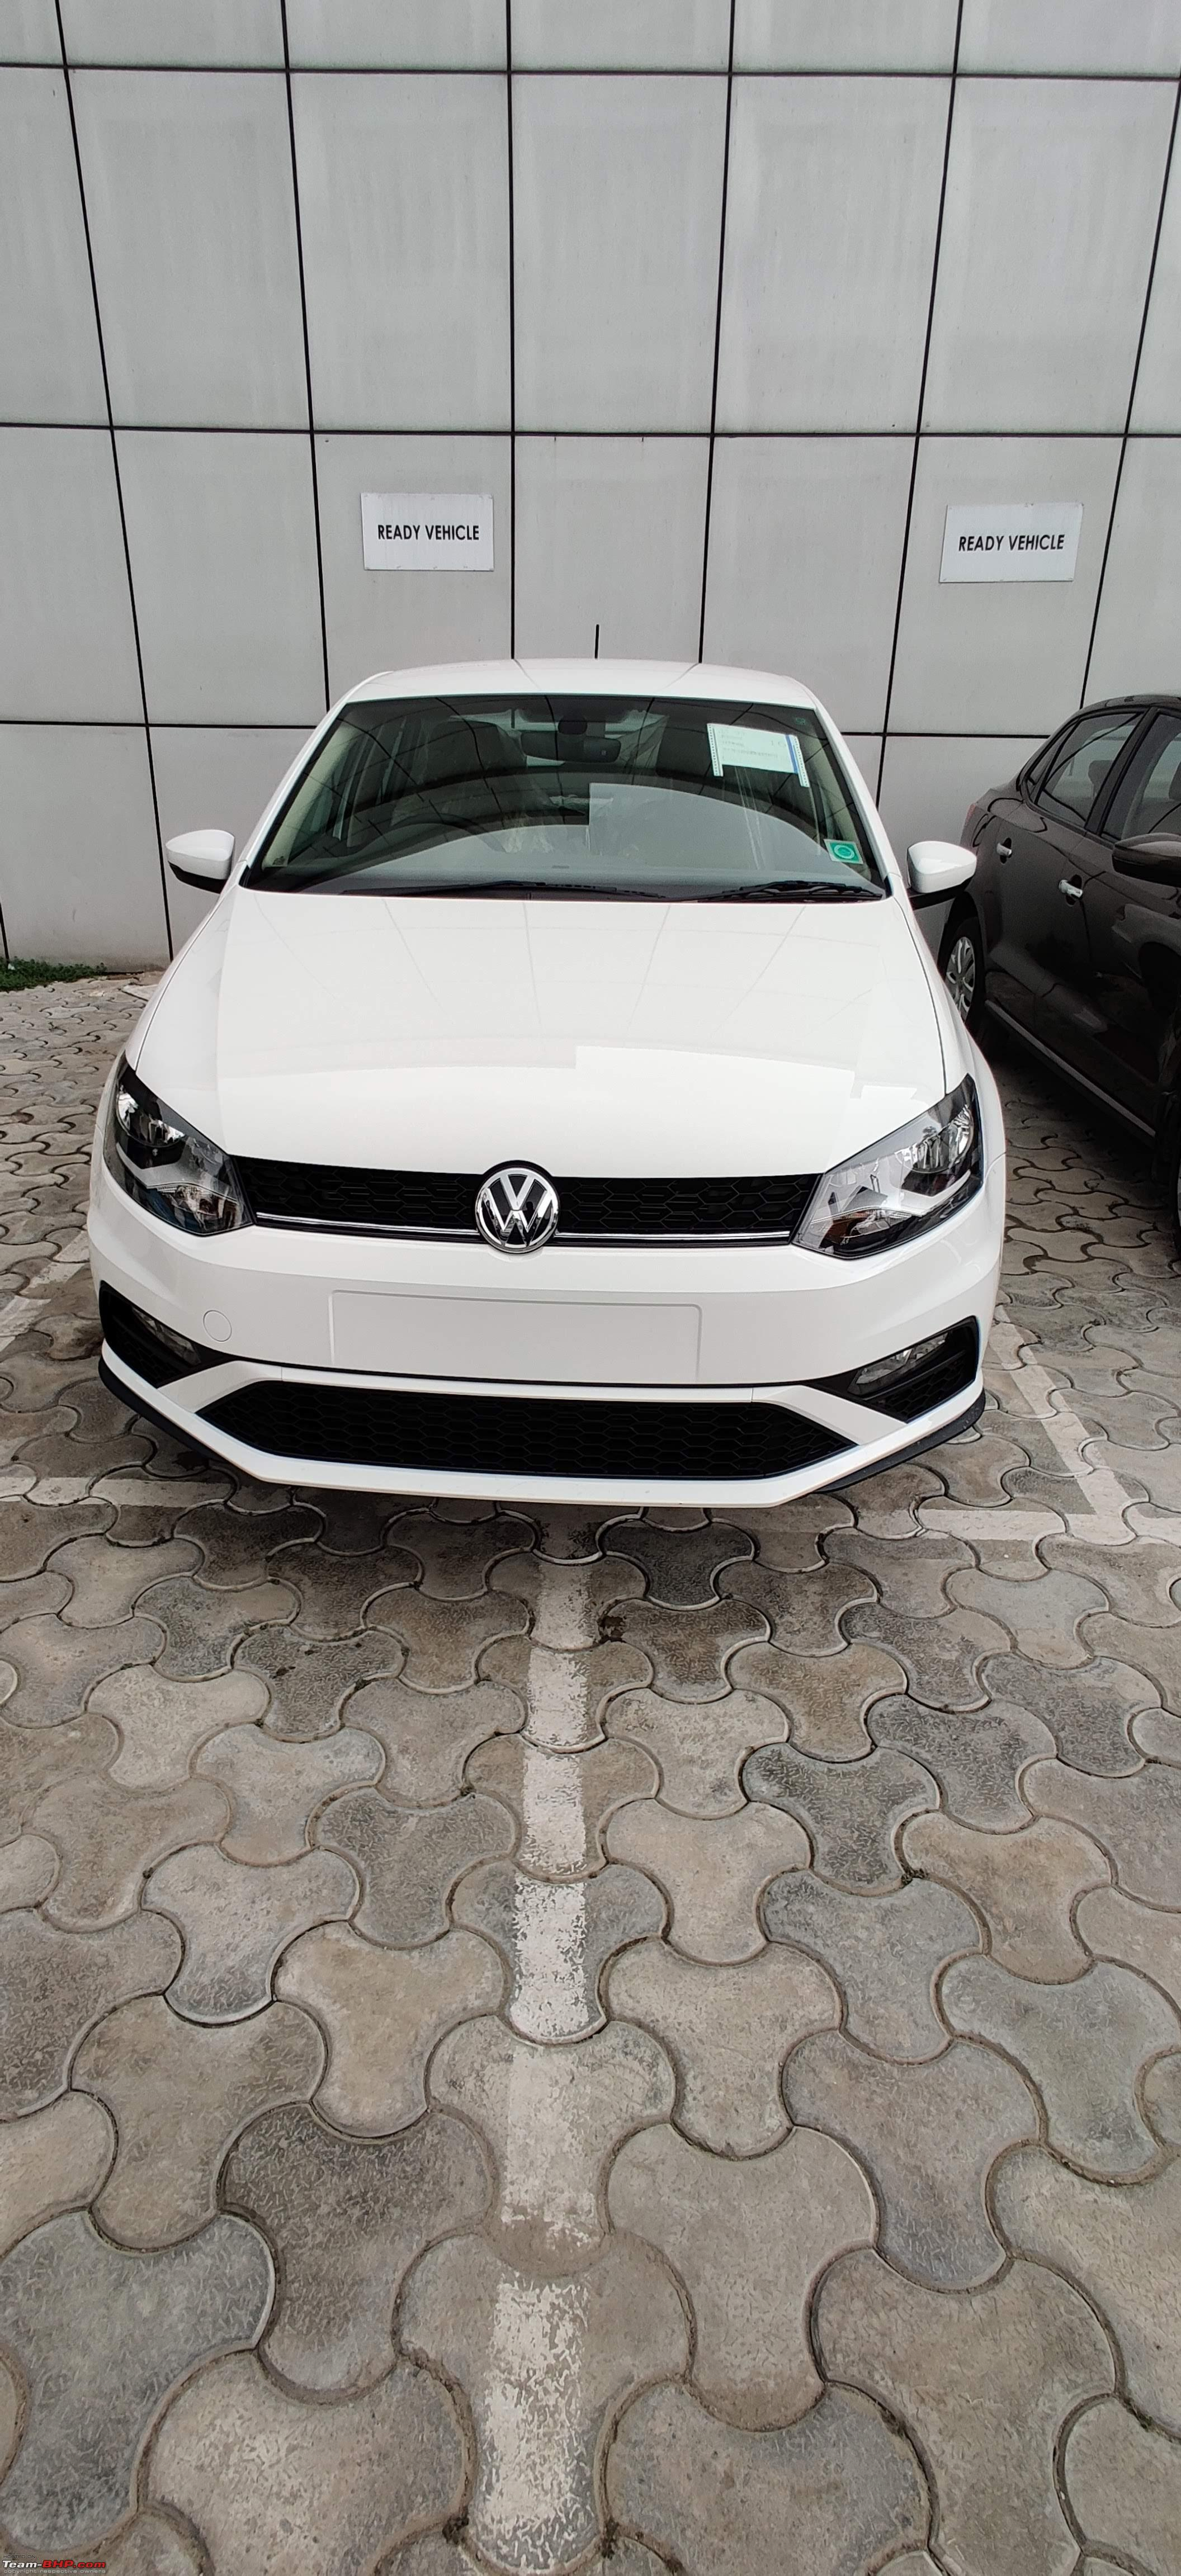 Volkswagen Polo Vento 1 0l Tsi Highline Plus Prices Reduced Page 3 Team Bhp